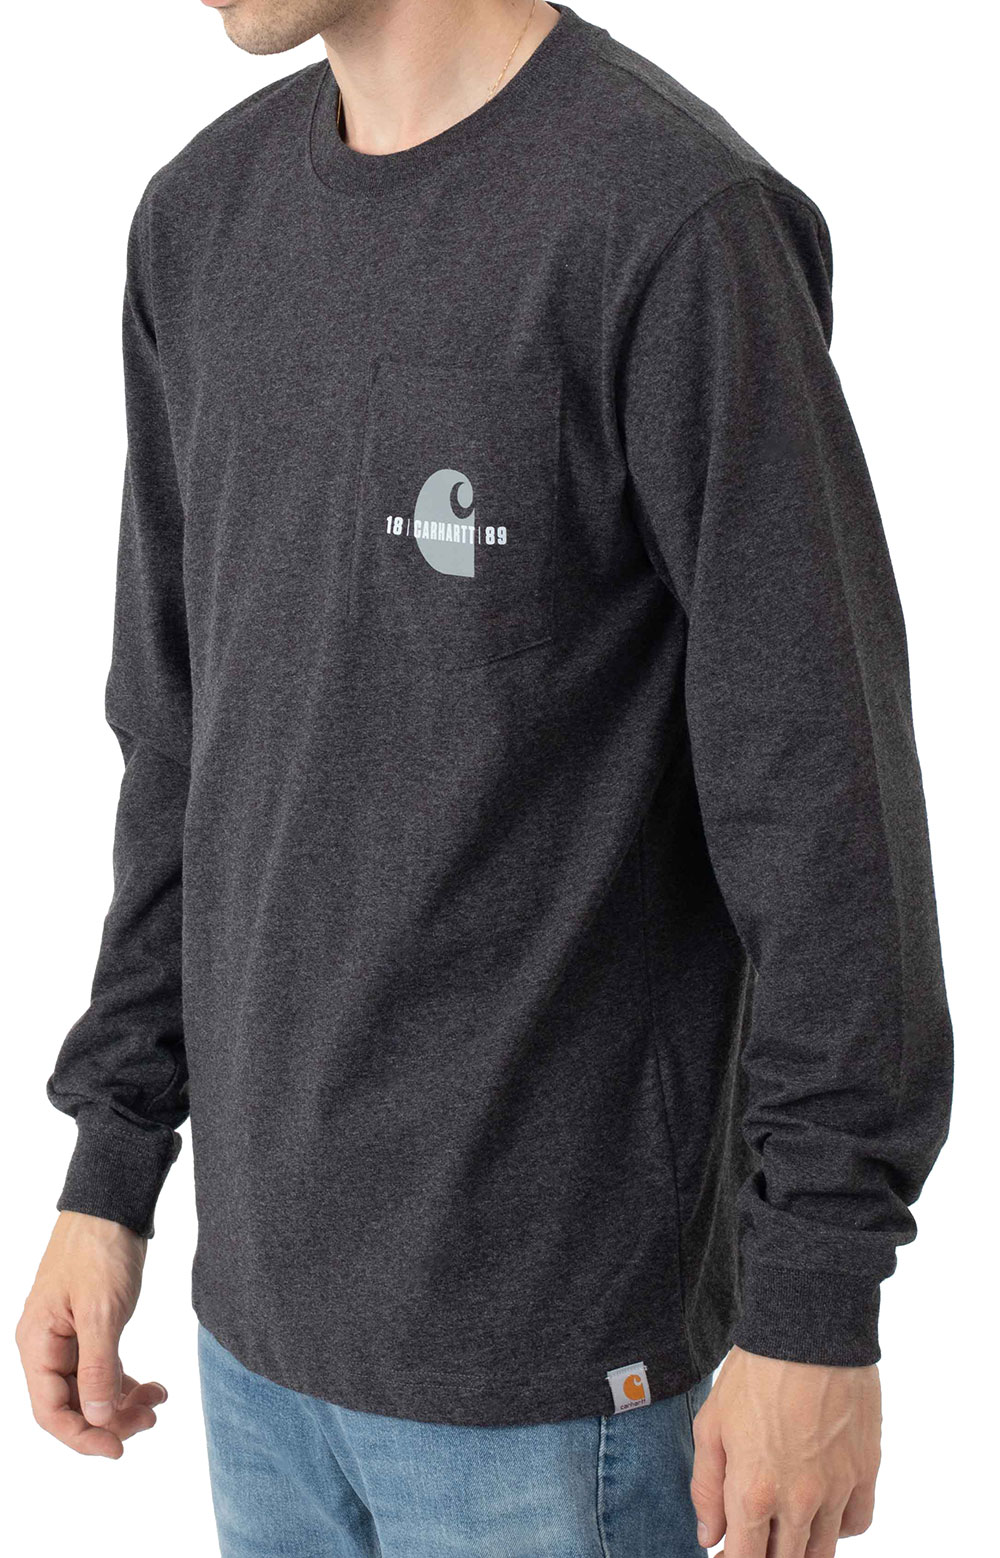 (105054) Loose Fit Heavyweight L/S Pocket Carhartt C Graphic T-Shirt - Carbon Heather  2